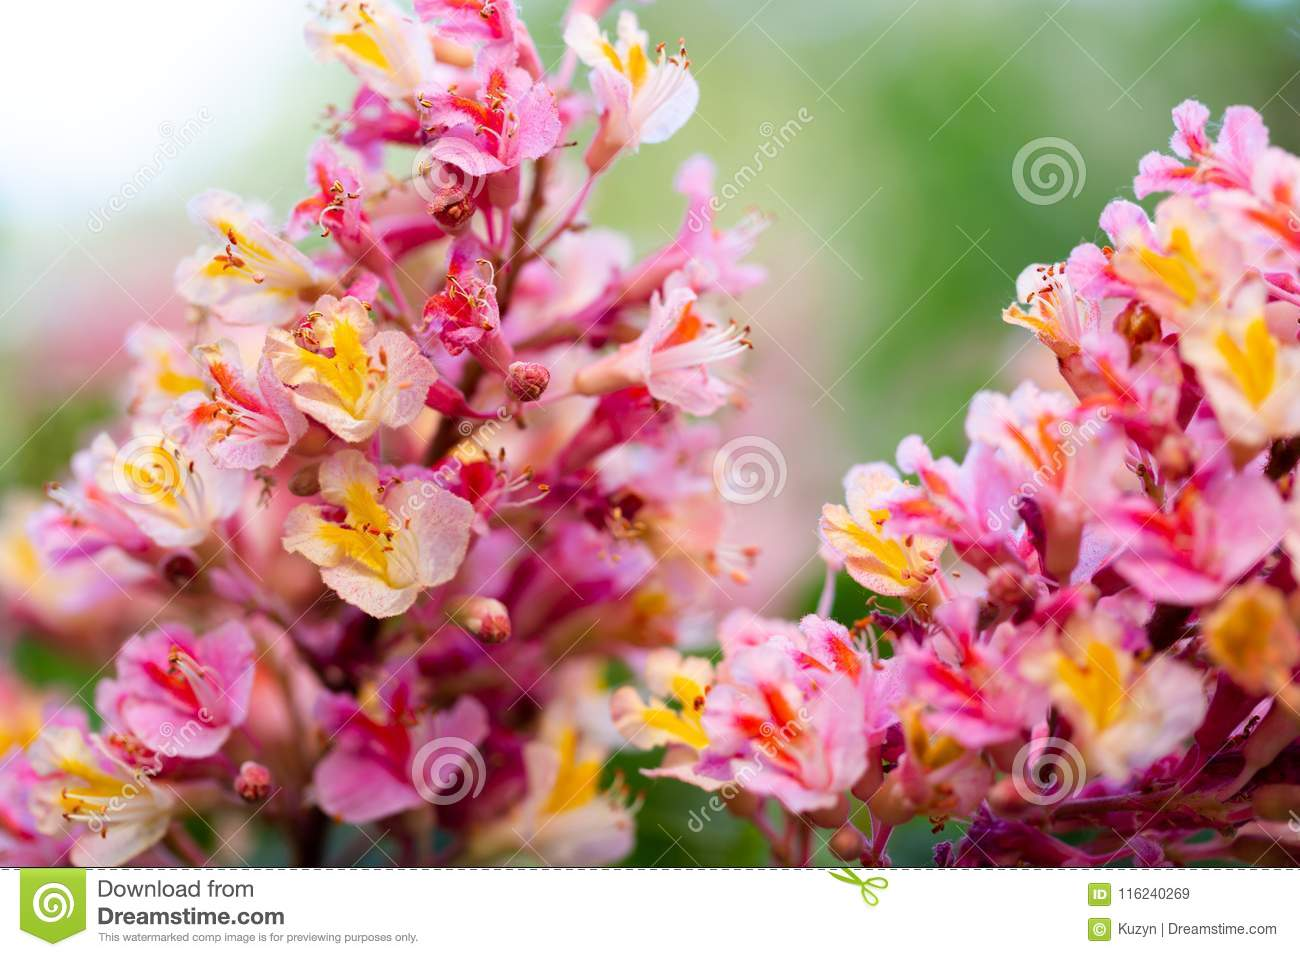 Pink chestnut tree, Aesculus × carnea, or red horse-chestnut bl